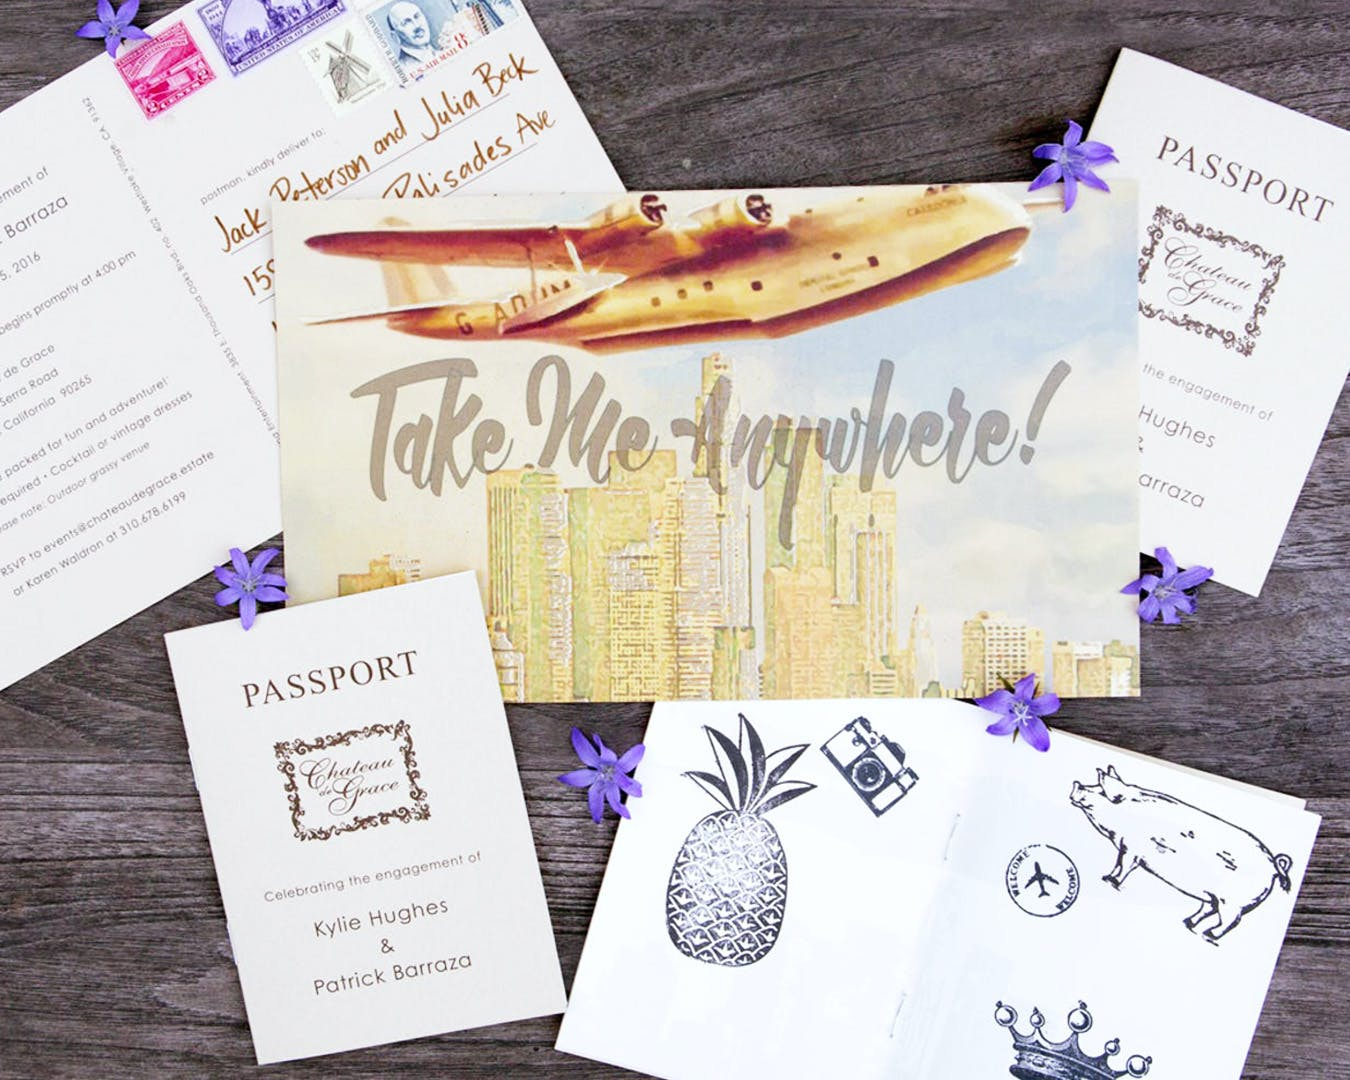 Aviation-themed party invitations for aviation-themed engagement party | PartySlate